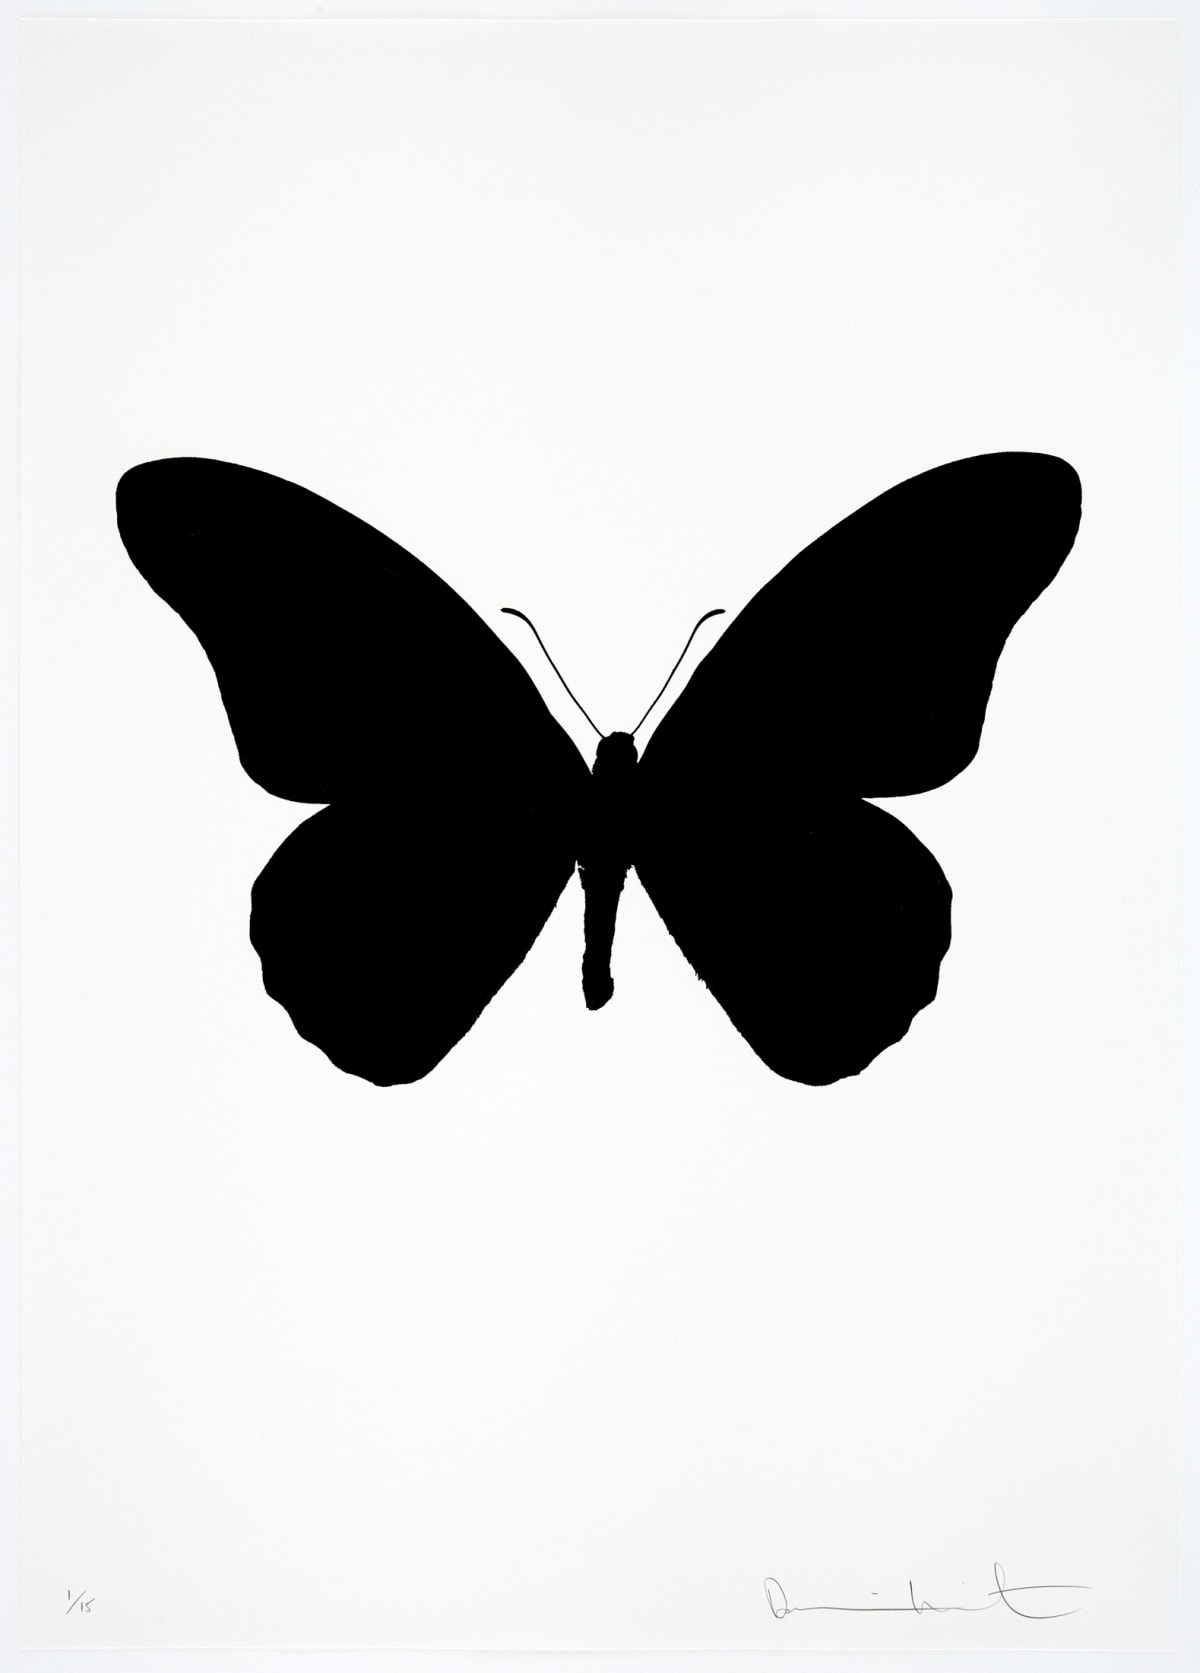 Damien Hirst The Souls IV - Raven Black/Raven Black/Raven Black Damien Hirst butterfly foil print for sale Damien Hirst print for sale , 2010 3 colour foil block on 300gsm Arches 88 archival paper. Signed and numbered. Published by Paul Stolper and Other Criteria 72 x 51cm OC8039 / 1418-62 Edition of 15